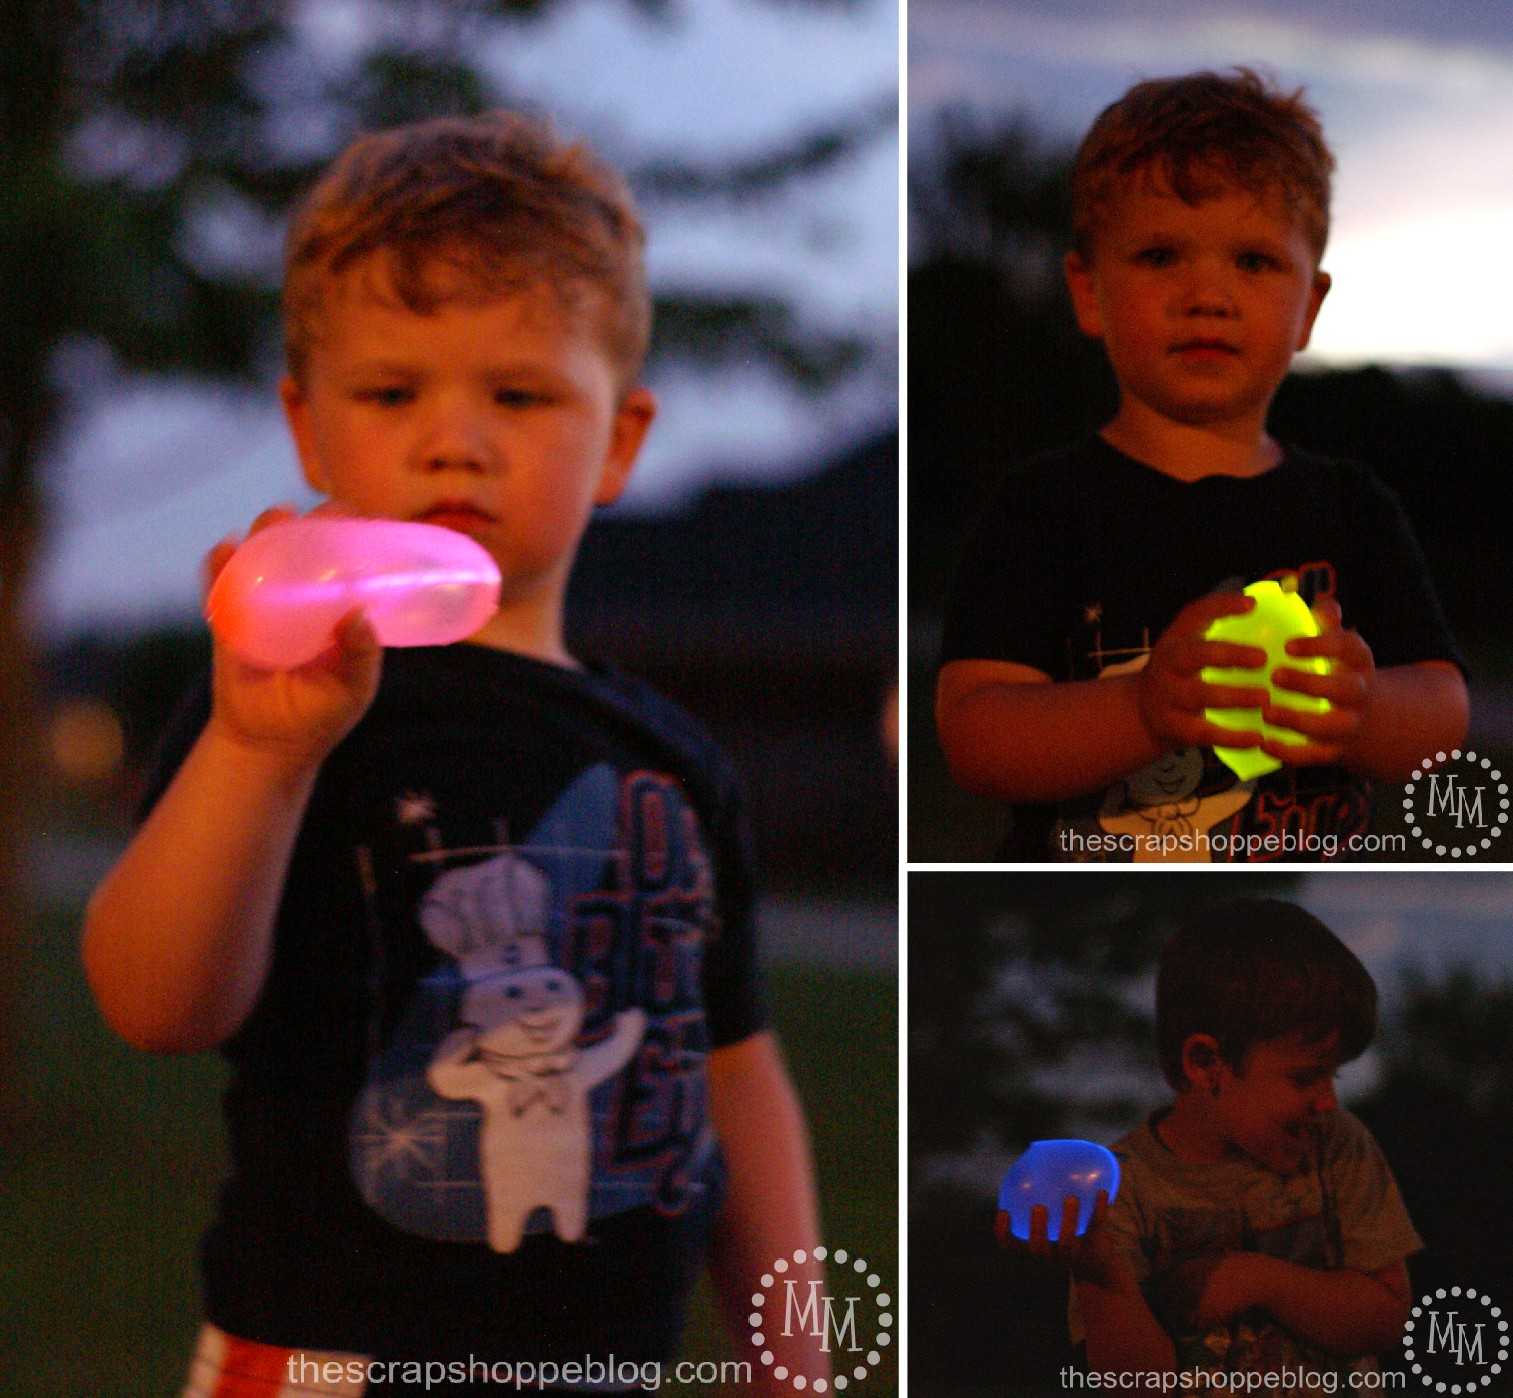 night time tag with glow in the dark water balloons